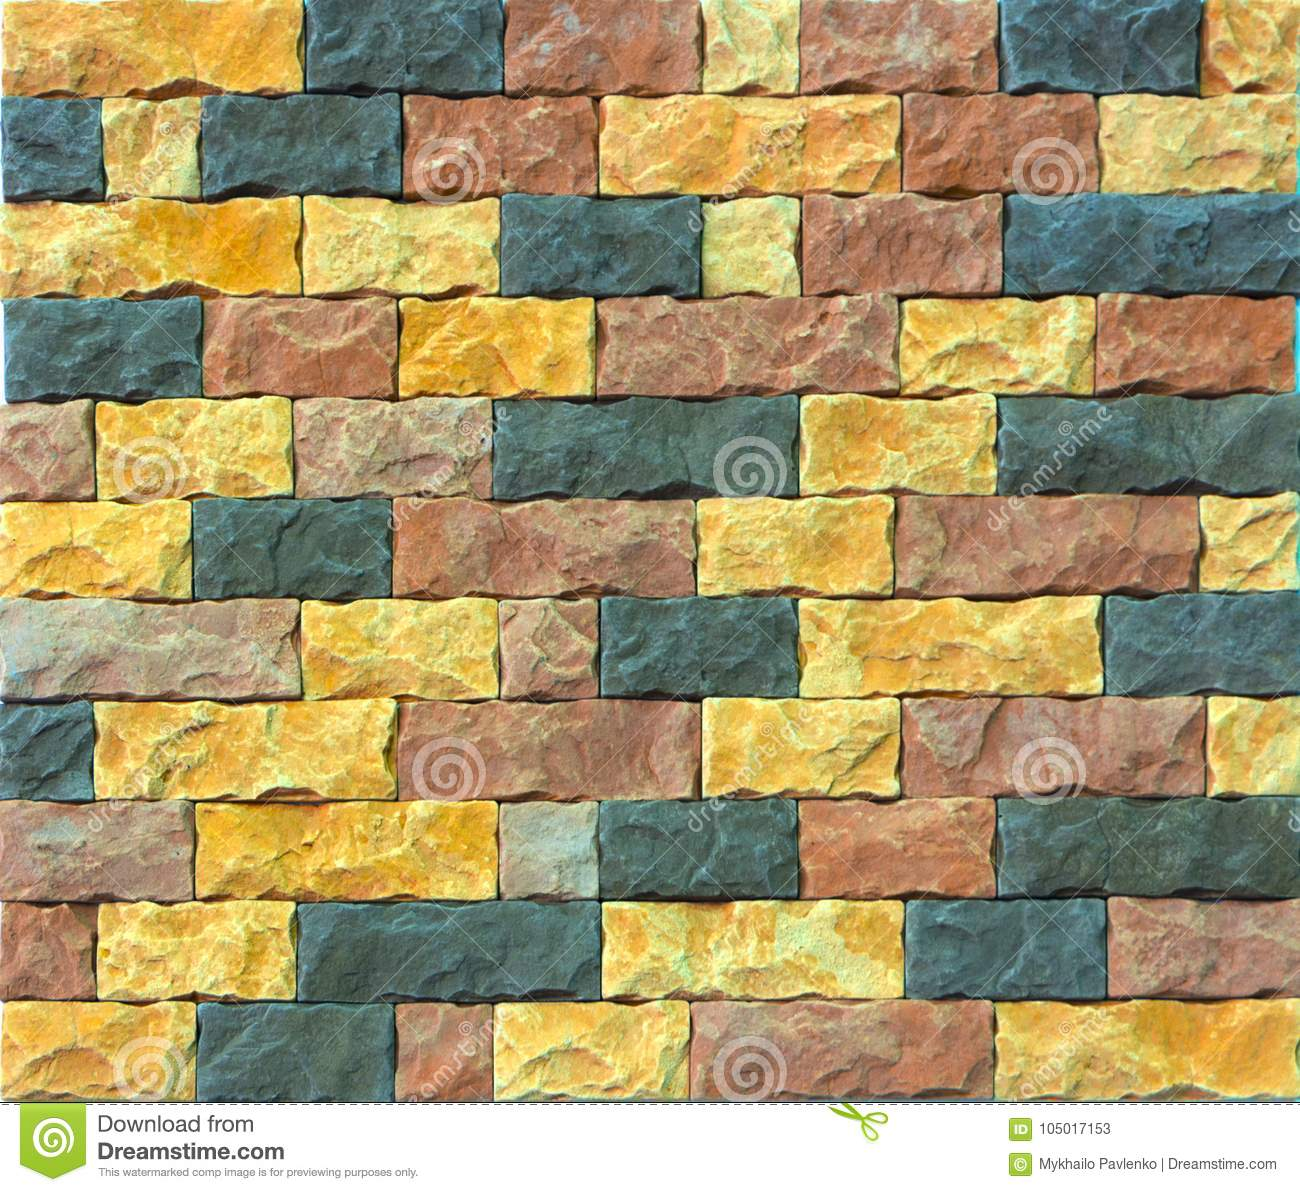 Decorative Brick Wall From Concrete Facing Tiles As Background Or ...